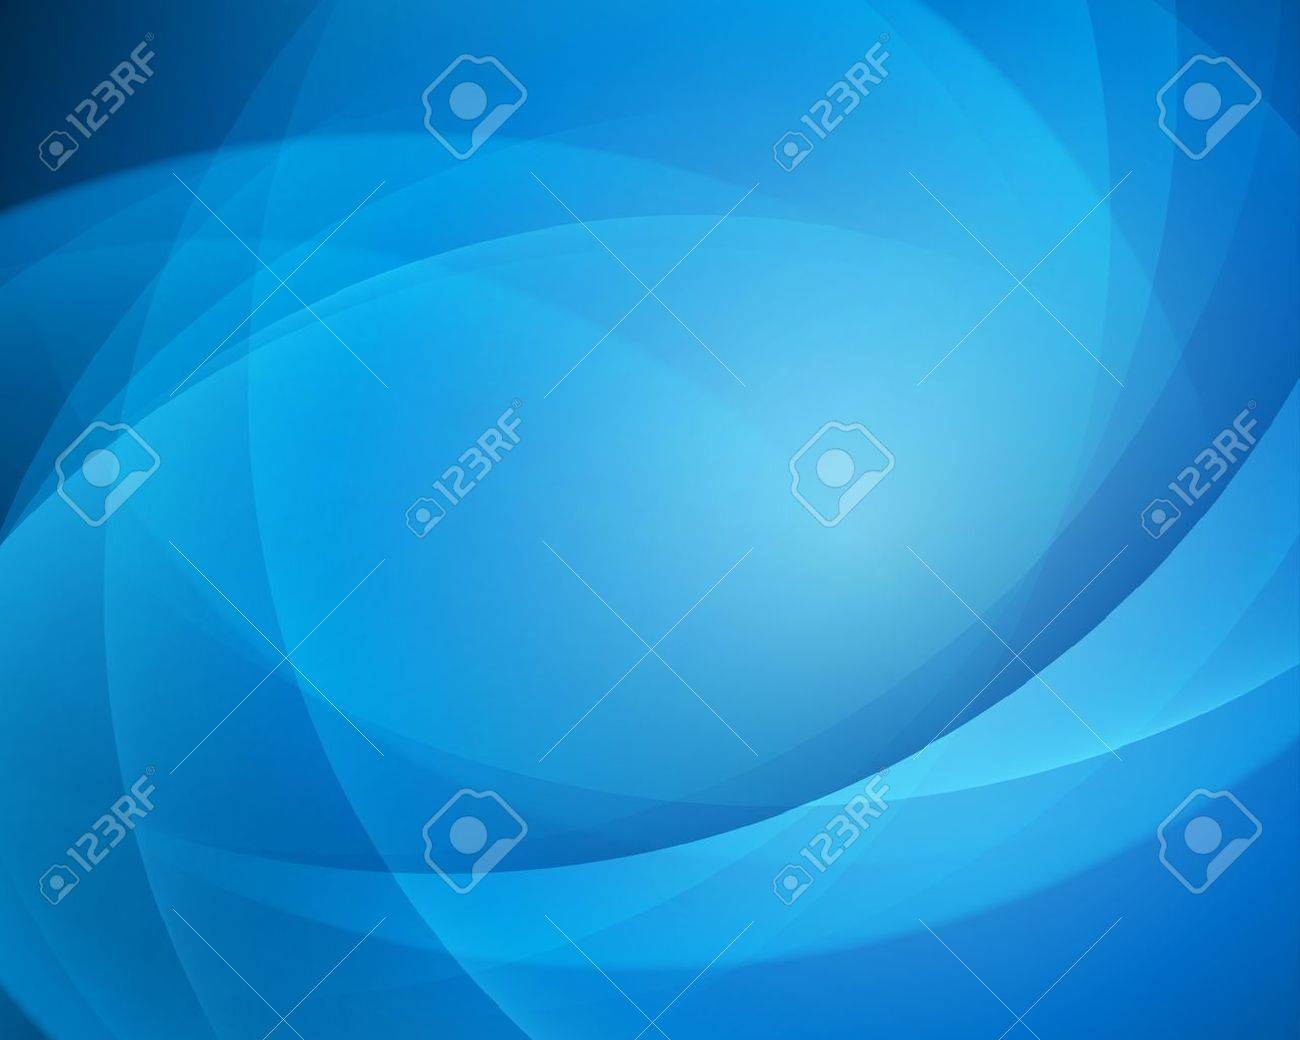 Abstract light background Stock Vector - 18783261